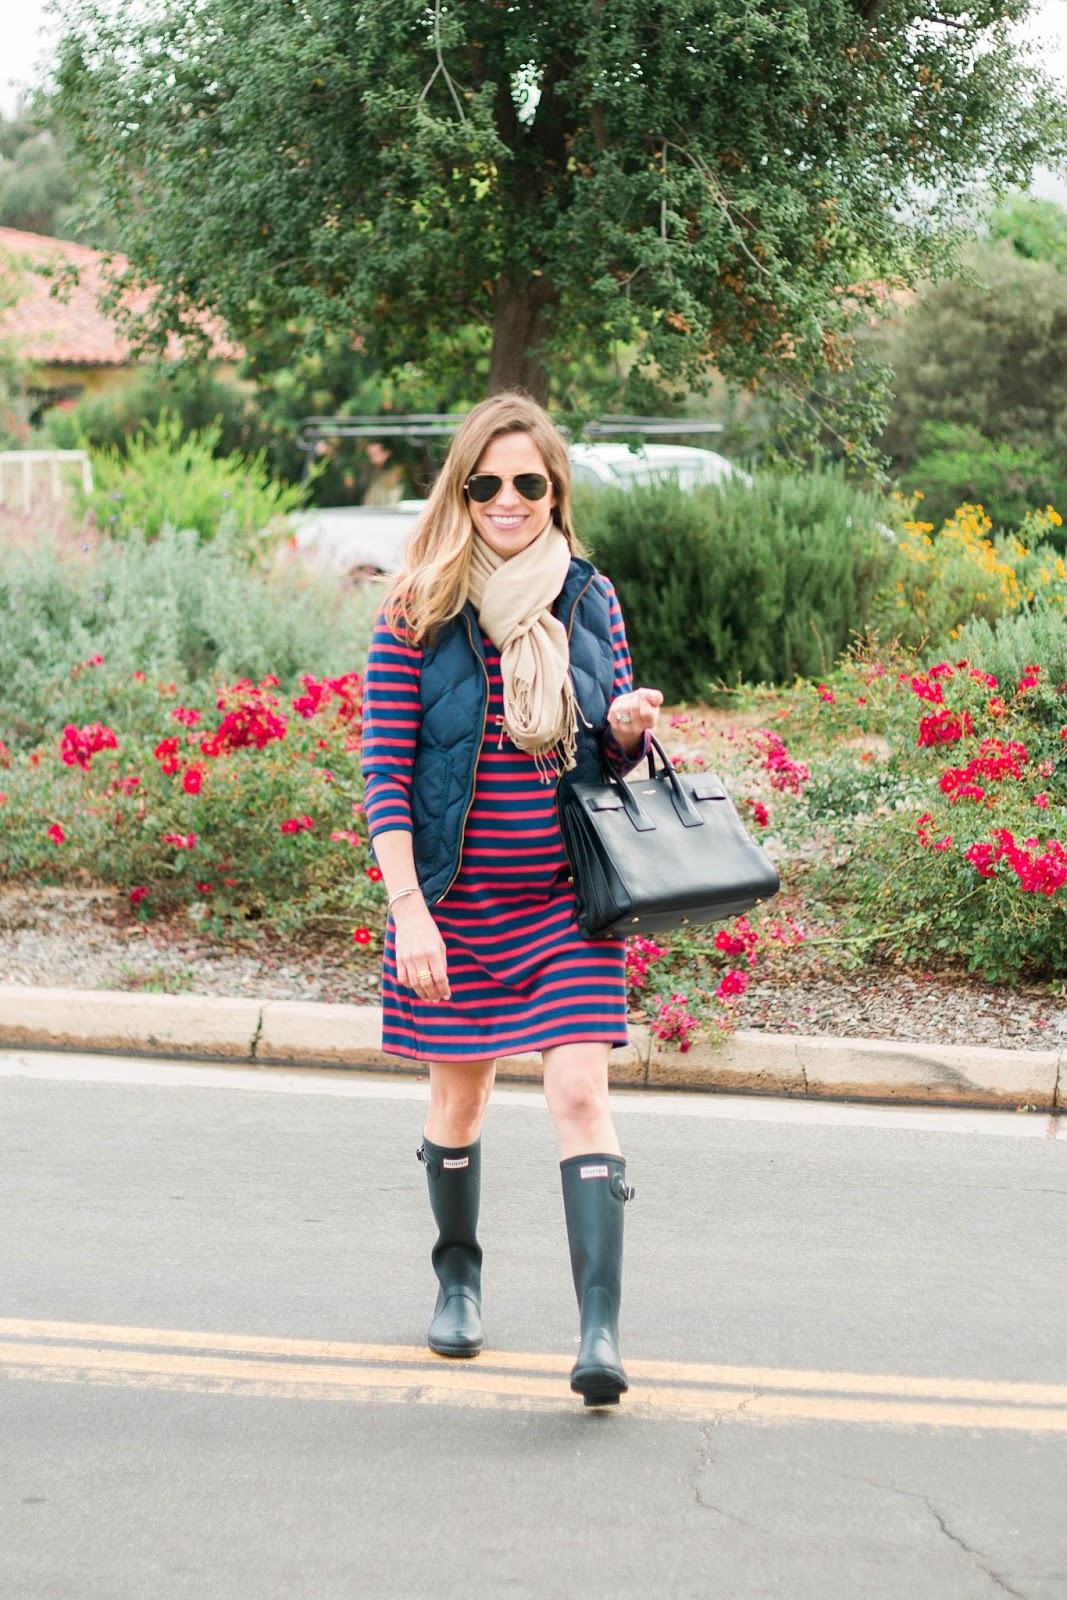 red and blue striped dress outfit